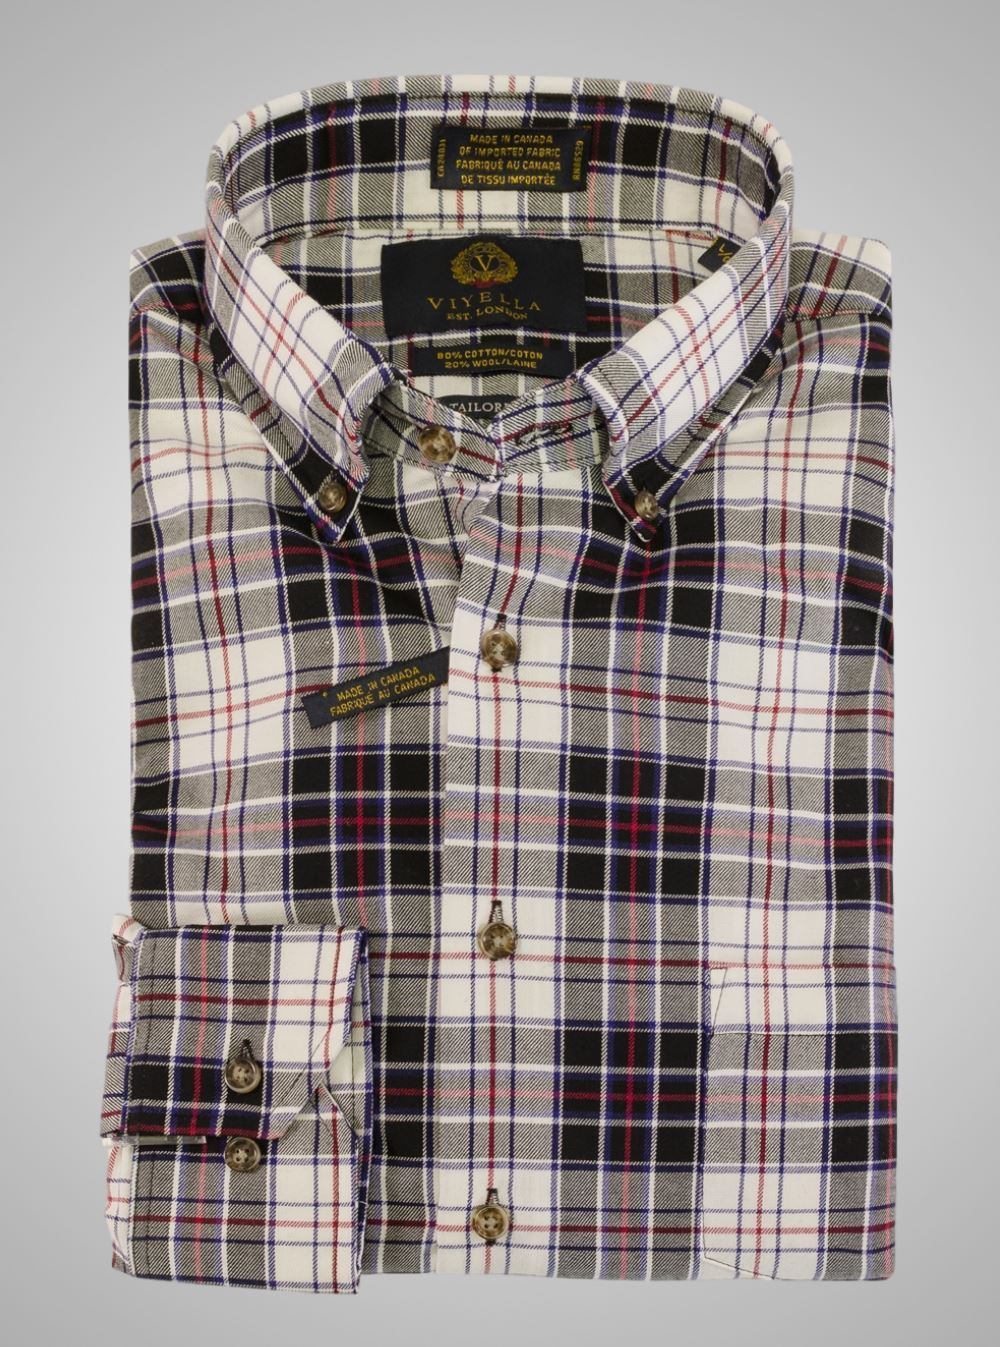 Viyella Black Plaid Tailored Fit Shirt